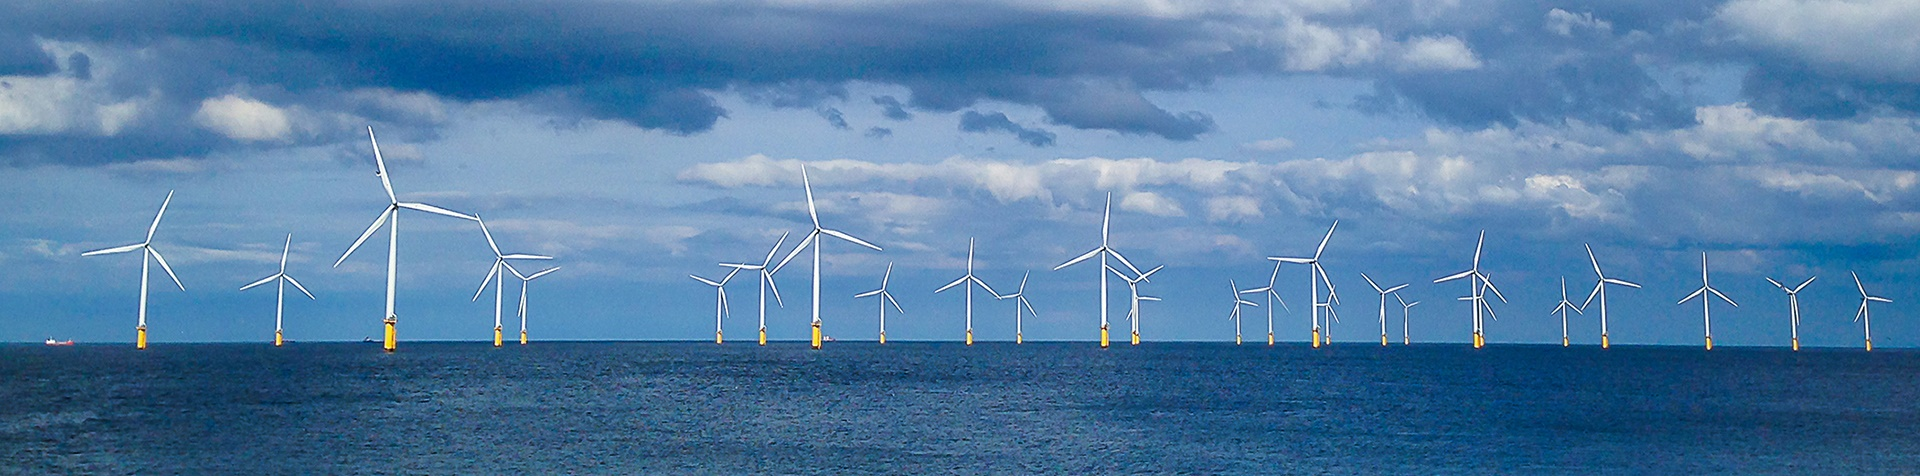 image of offshore wind turbines